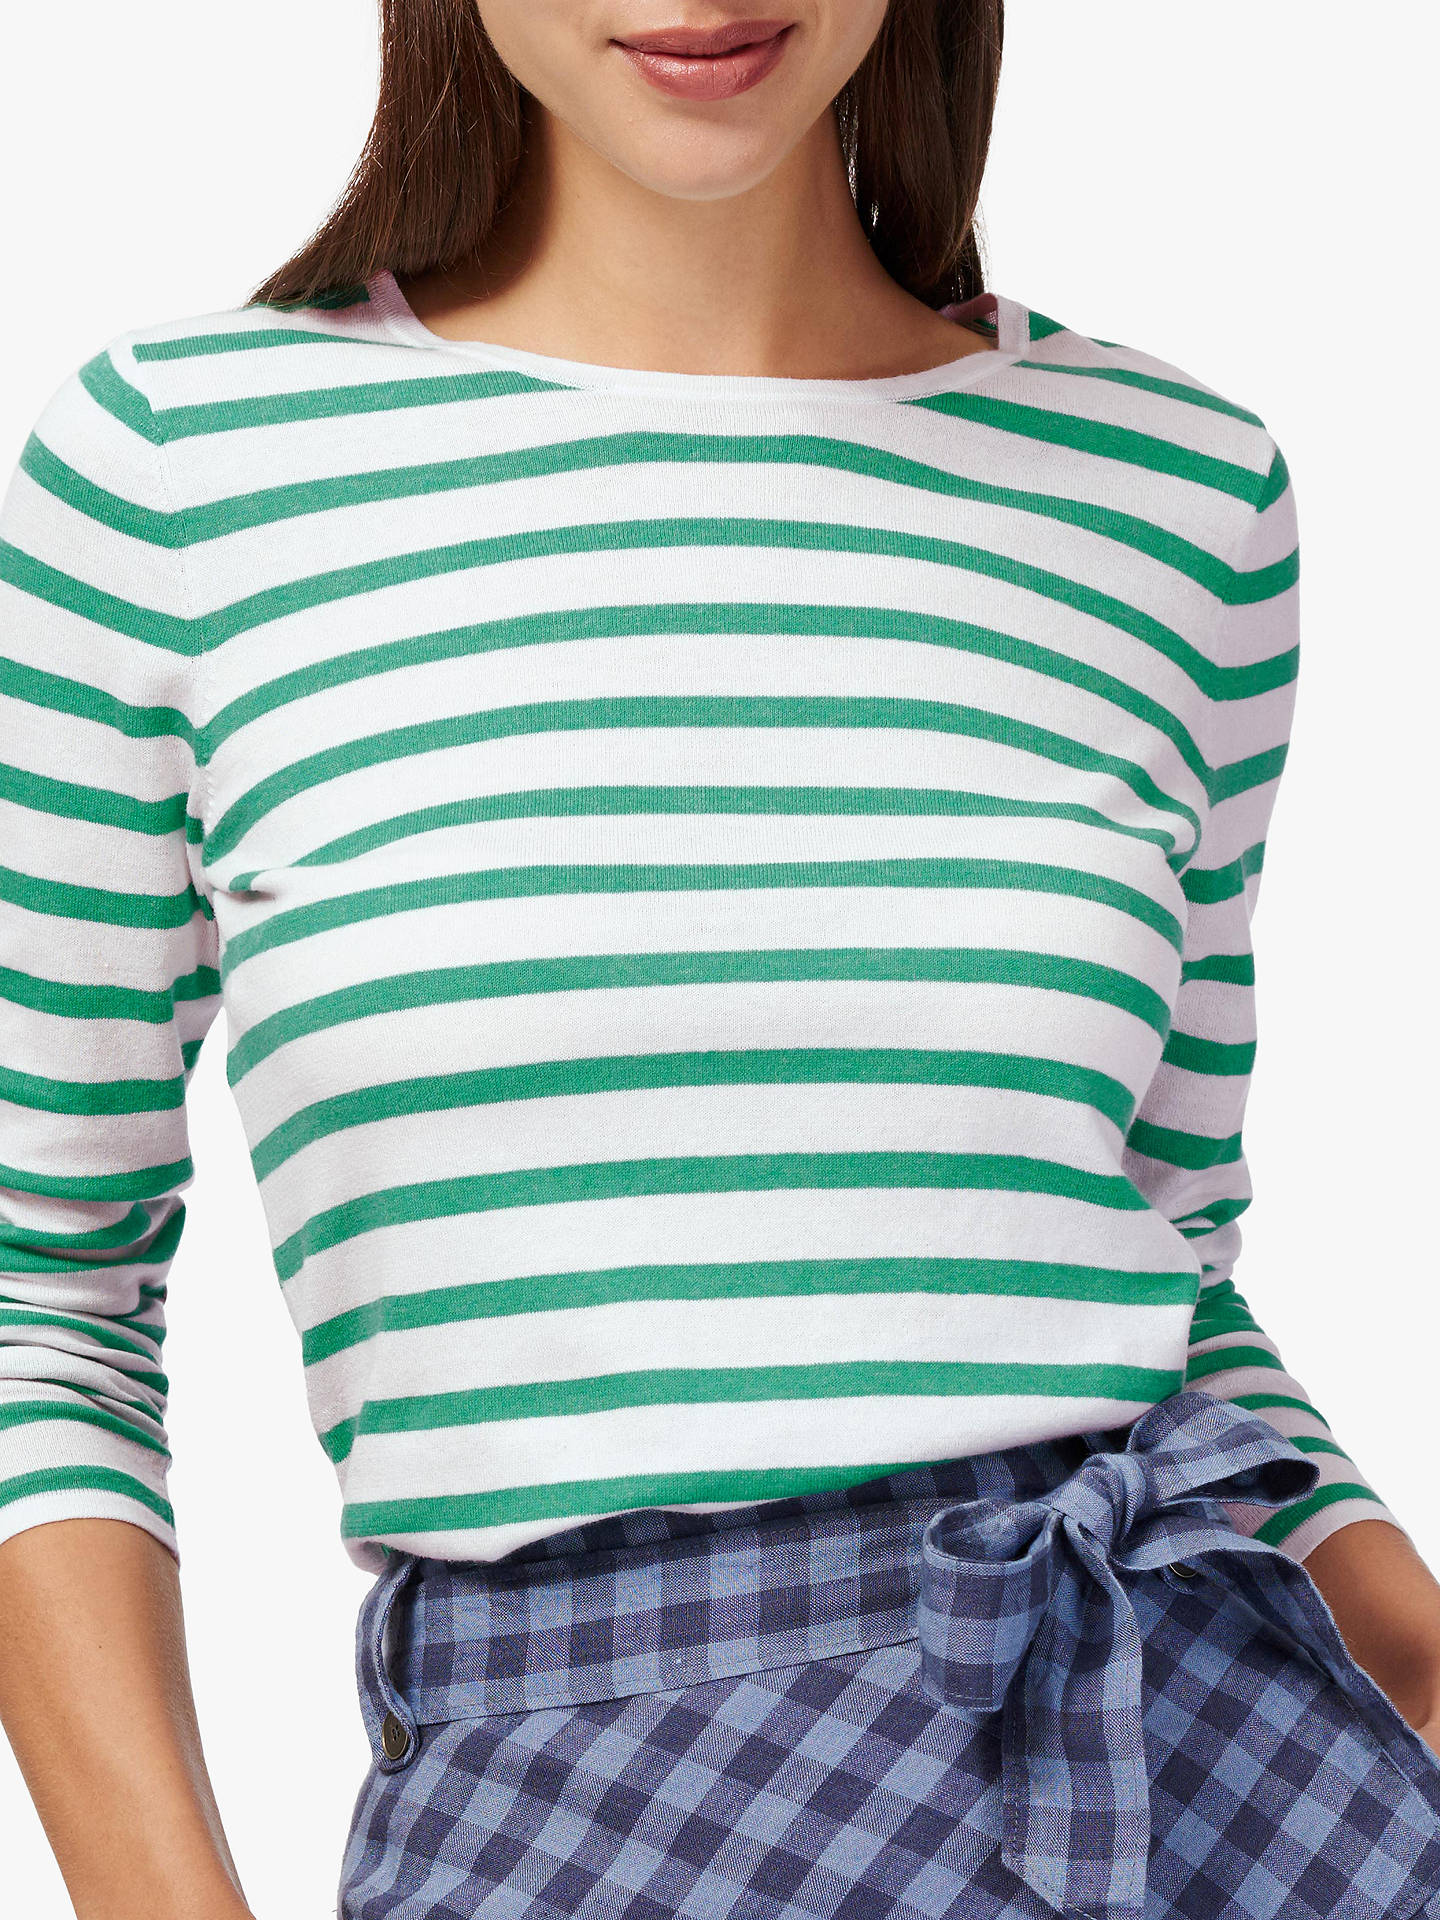 Buy Brora Cotton Blend Striped T-Shirt, White/Spearmint, 10 Online at johnlewis.com